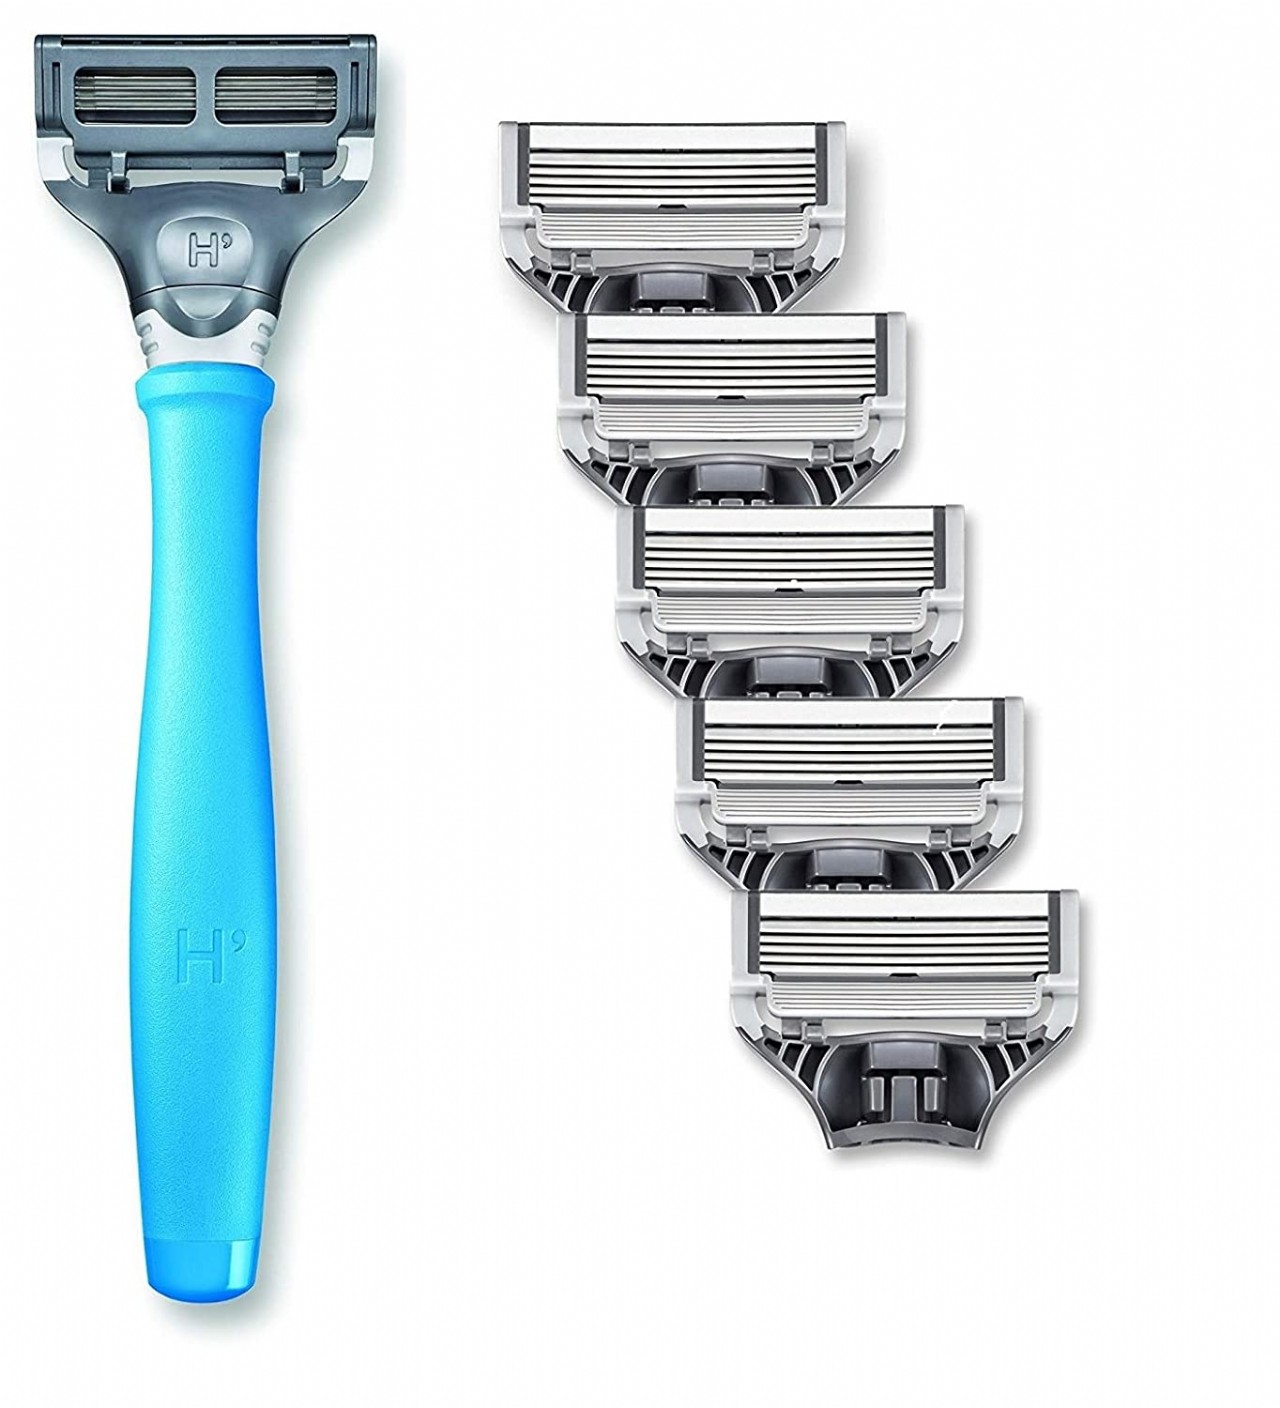 Harry's Men's Razor Set with 6 Razor Blades, Surf Blue (Sky Blue)